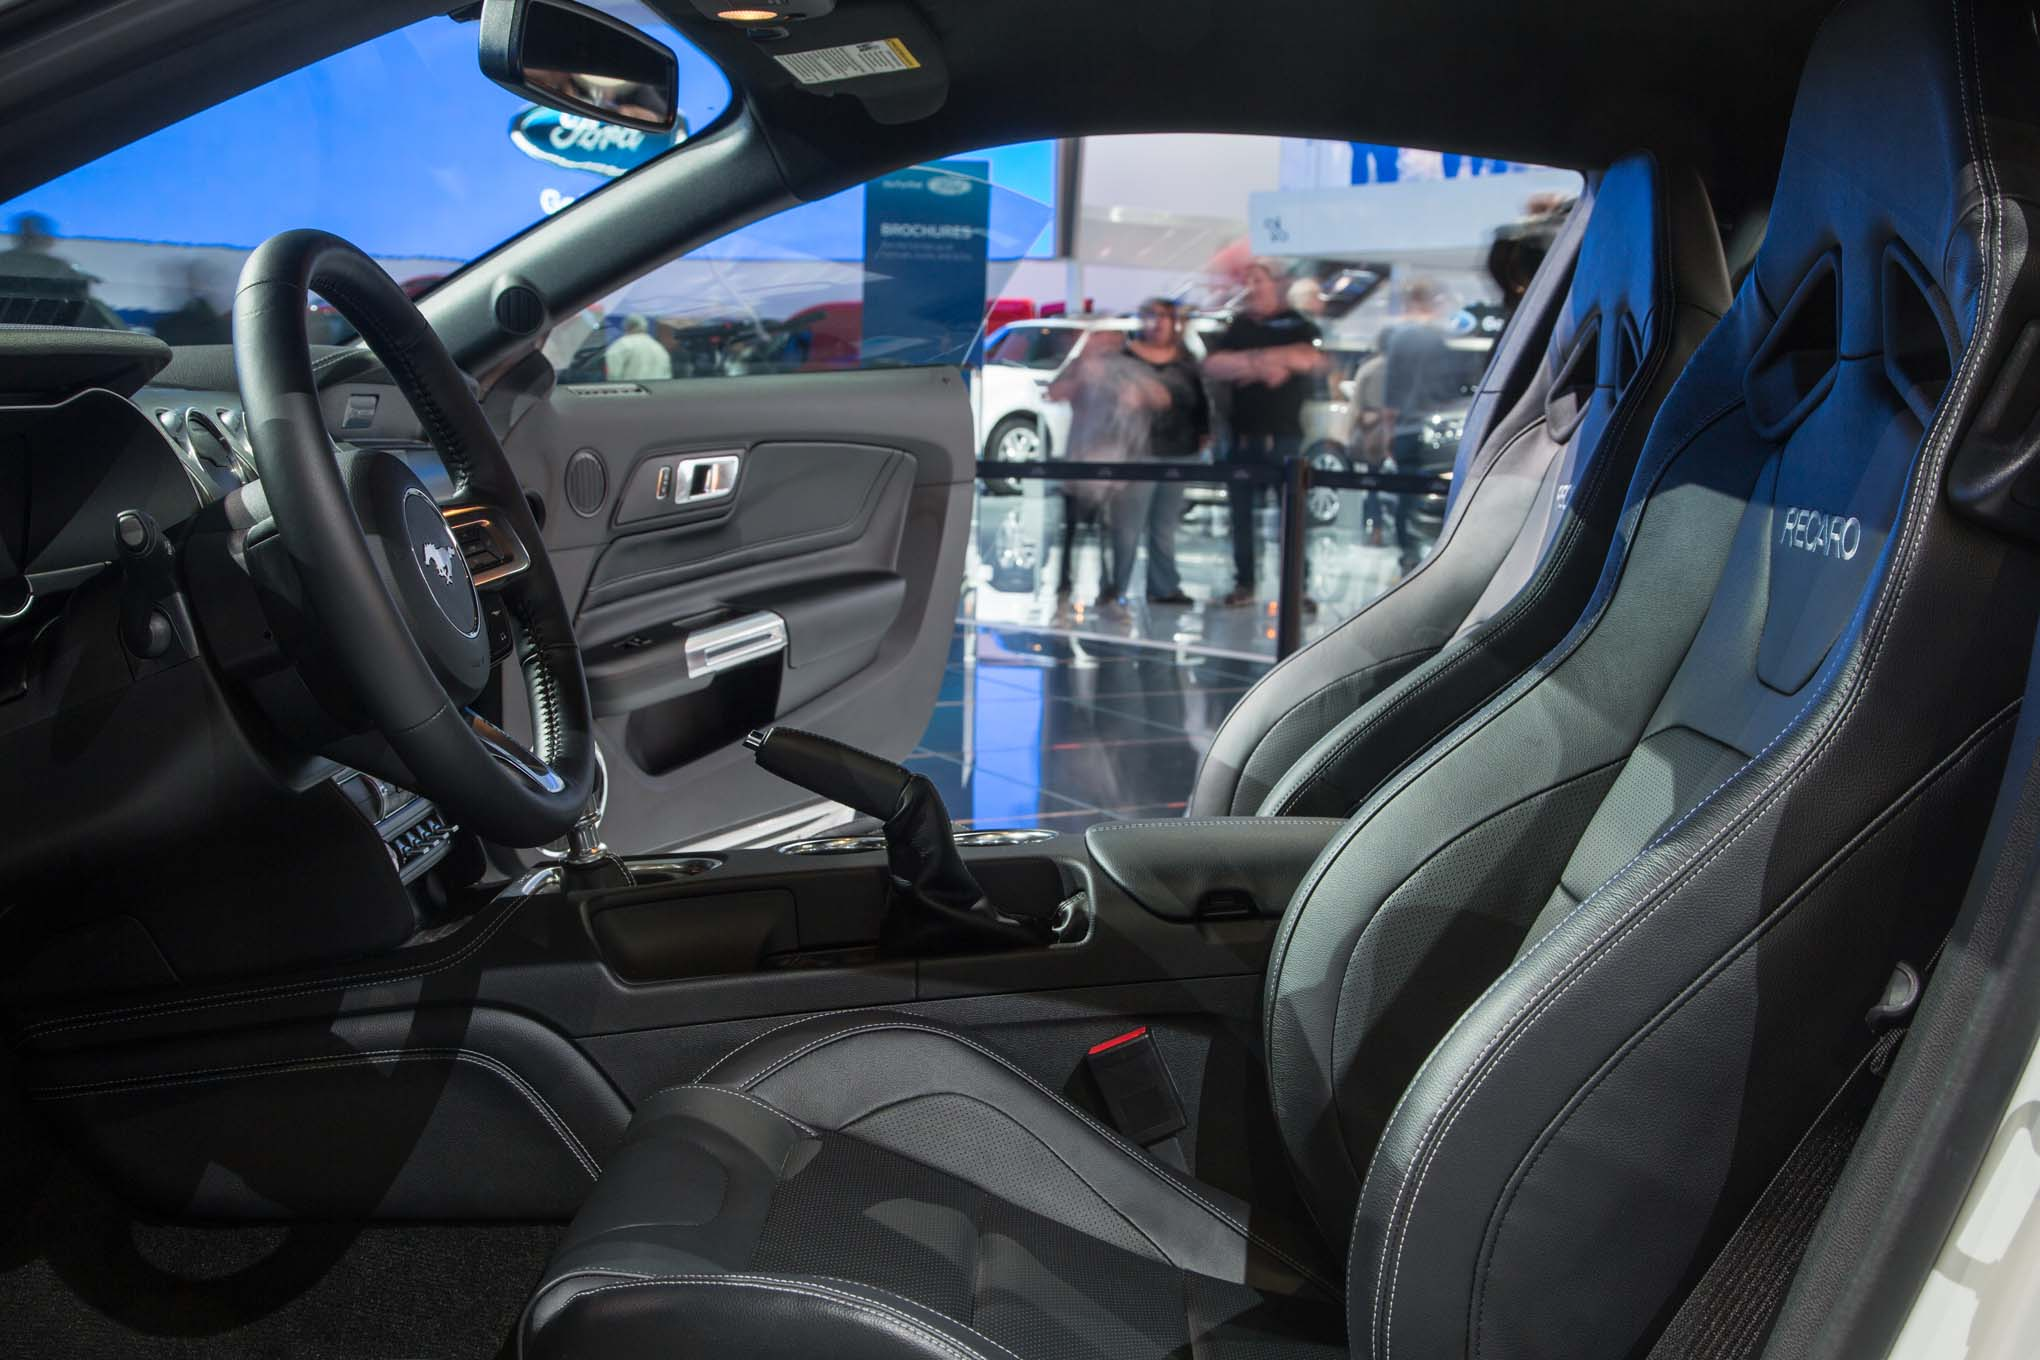 2018 ford mustang gt interior seats 02 1